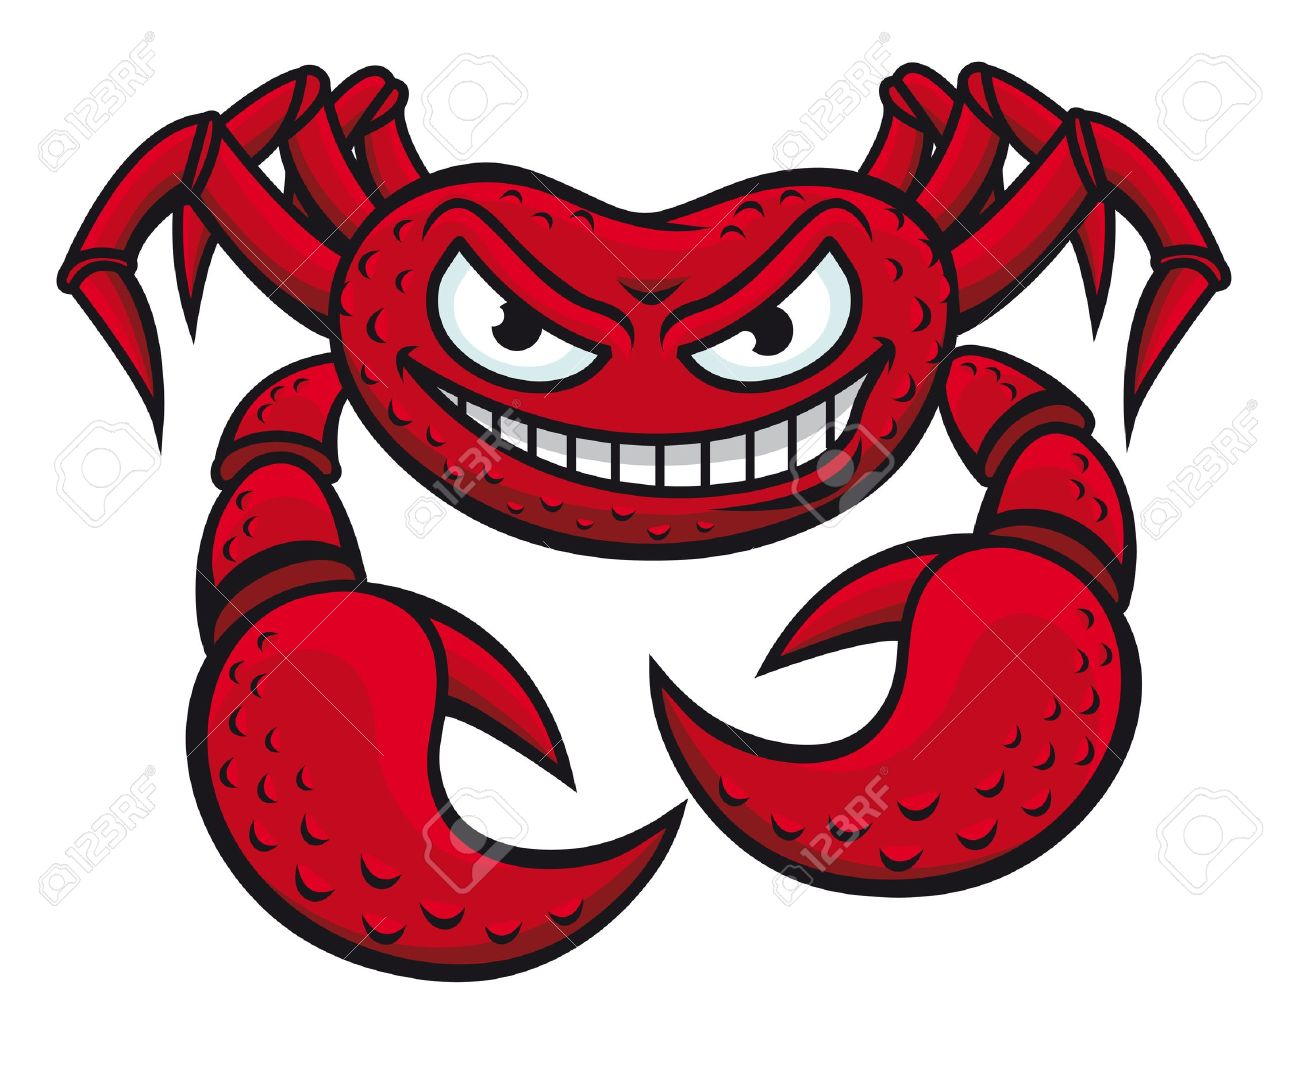 Angry red crab in cartoon style isolated on white background for mascot design Stock Vector - 12306898